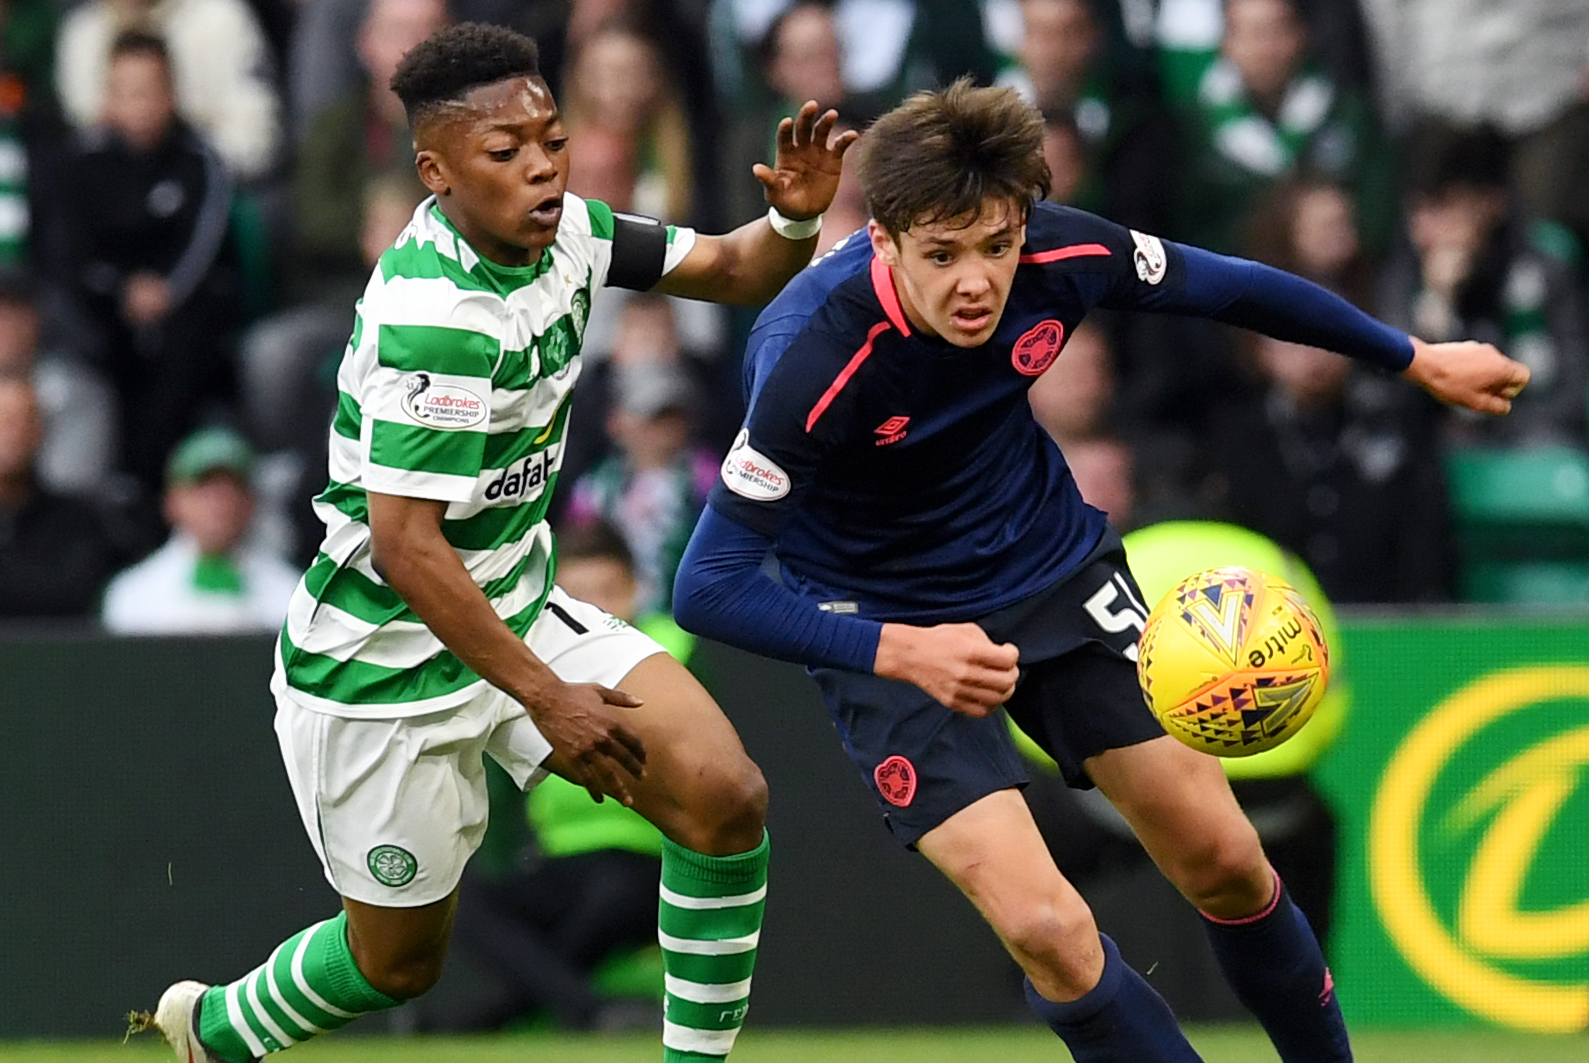 Celtic 2 Hearts 1: Karamoko Dembele makes his debut aged just 16 as Mikey Johnston double clinches victory